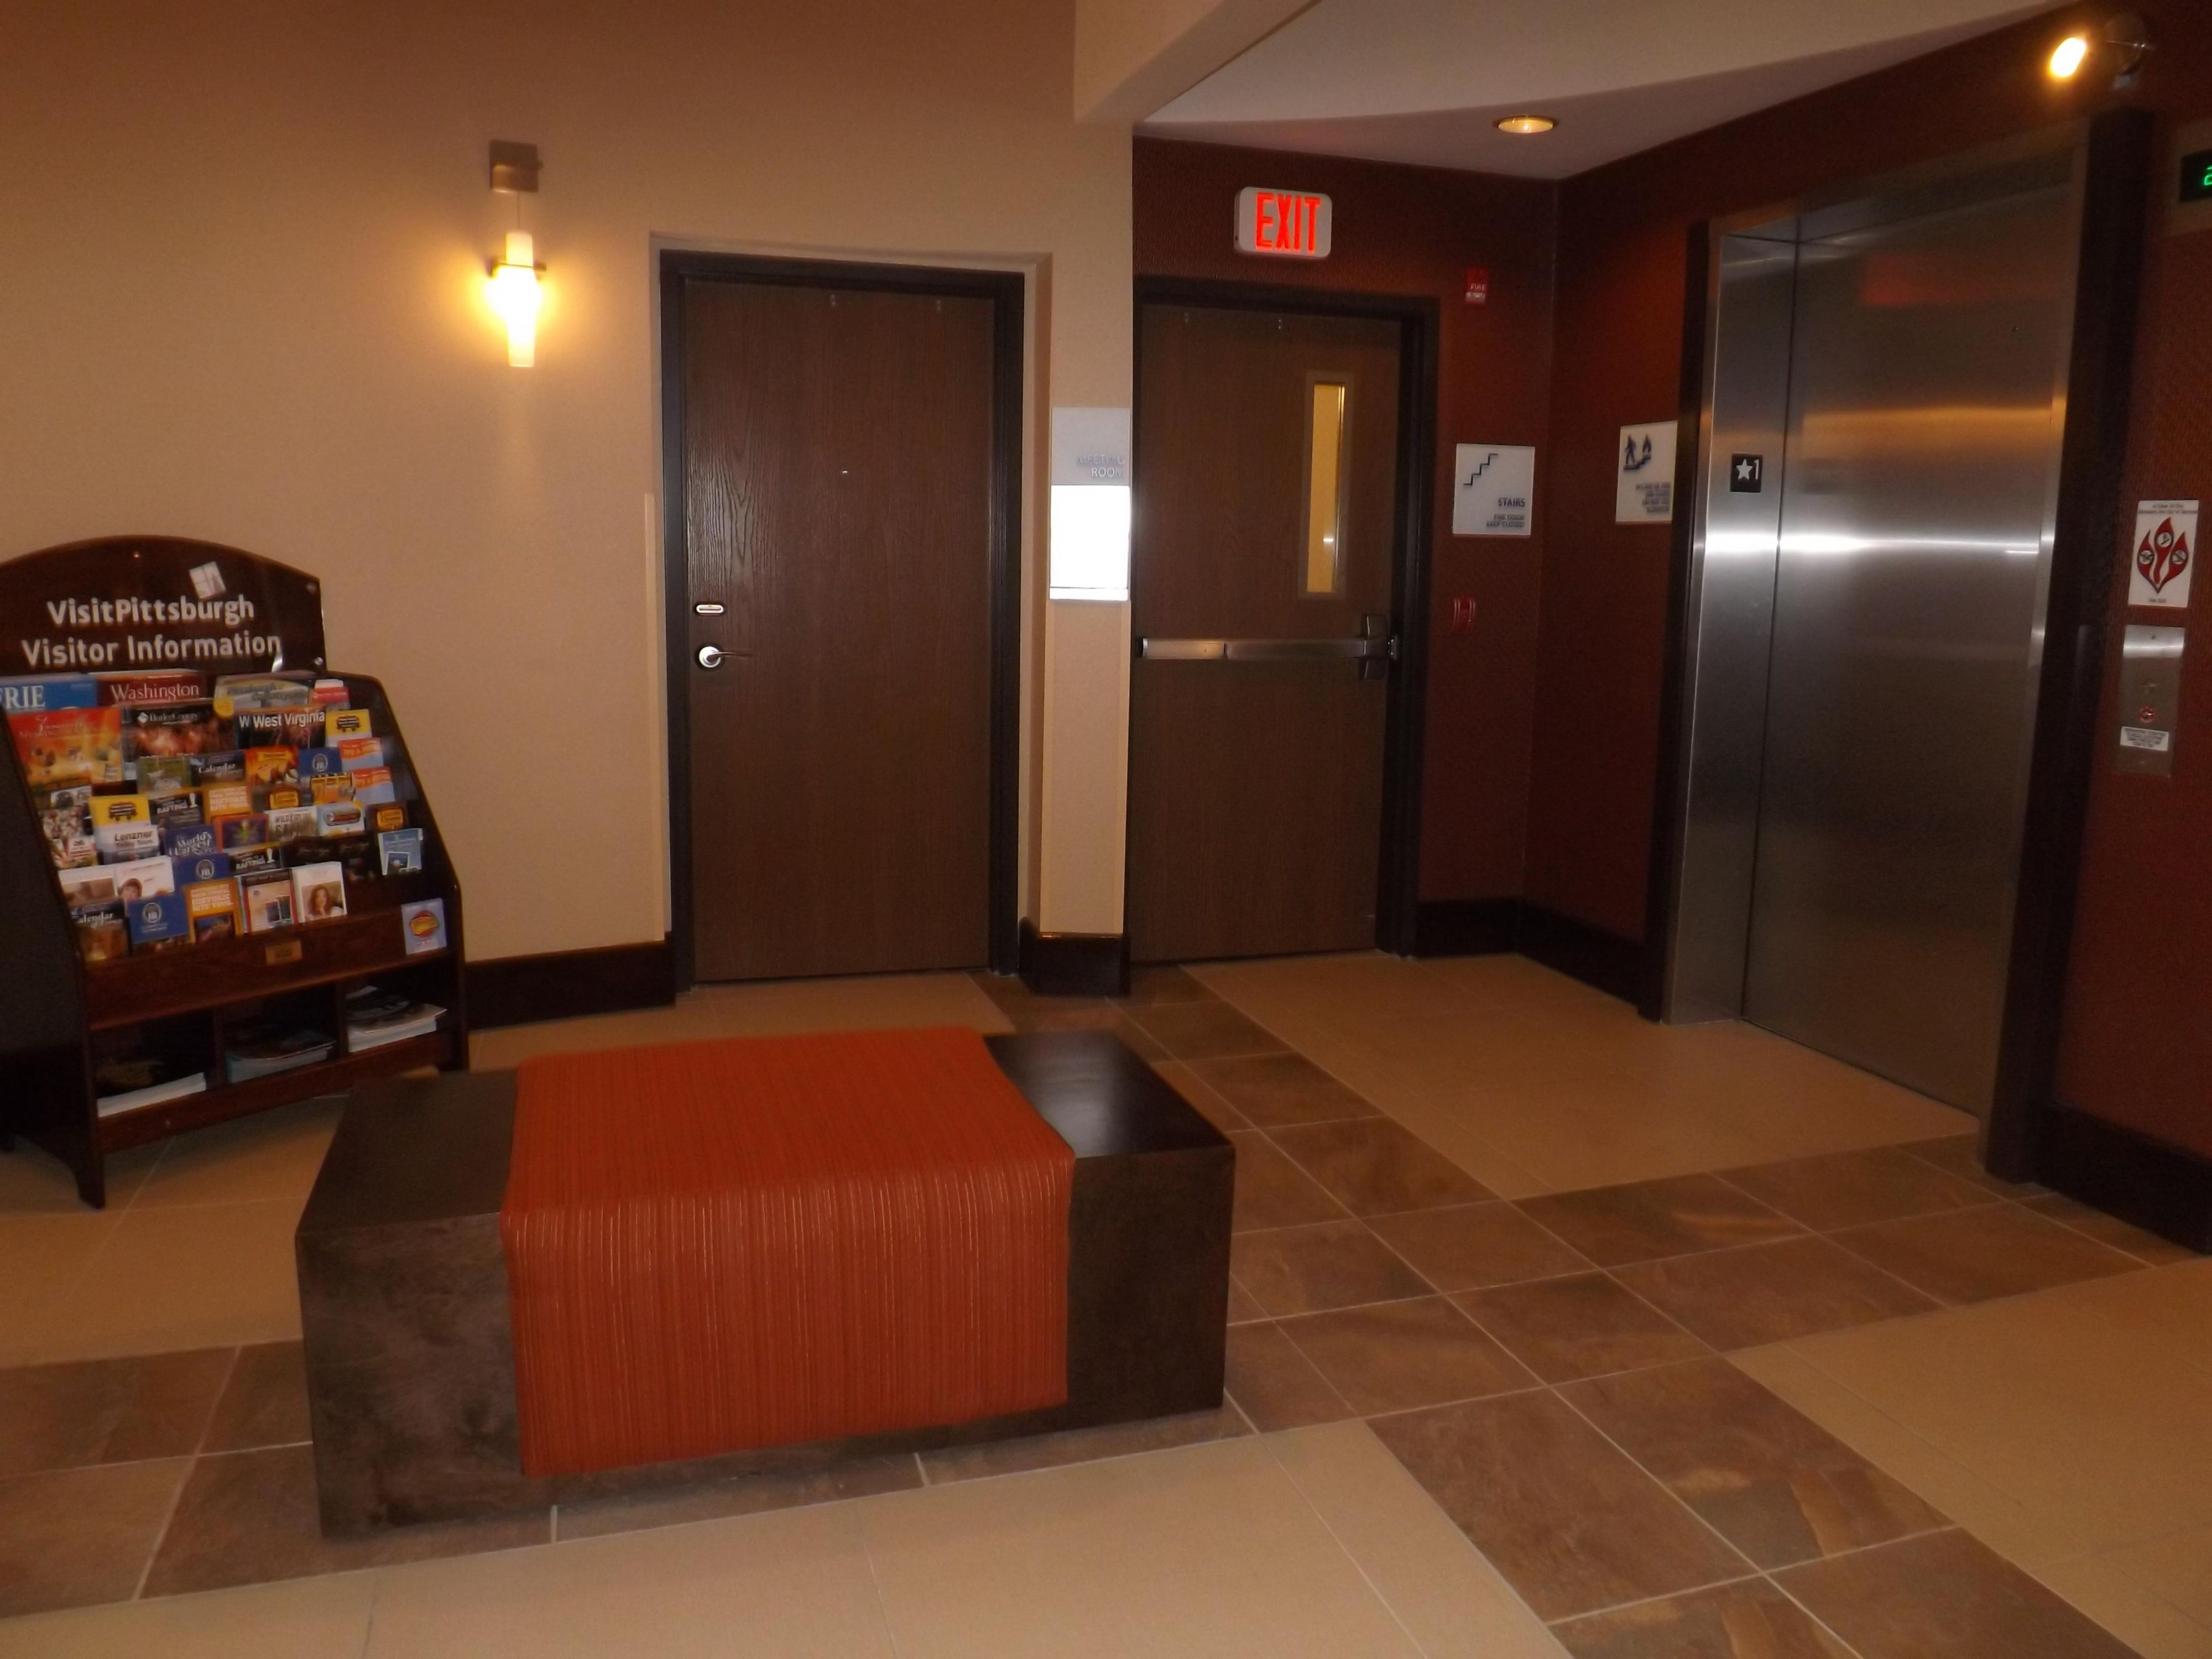 Holiday Inn Express Waterfront Mall Elevator Lobby